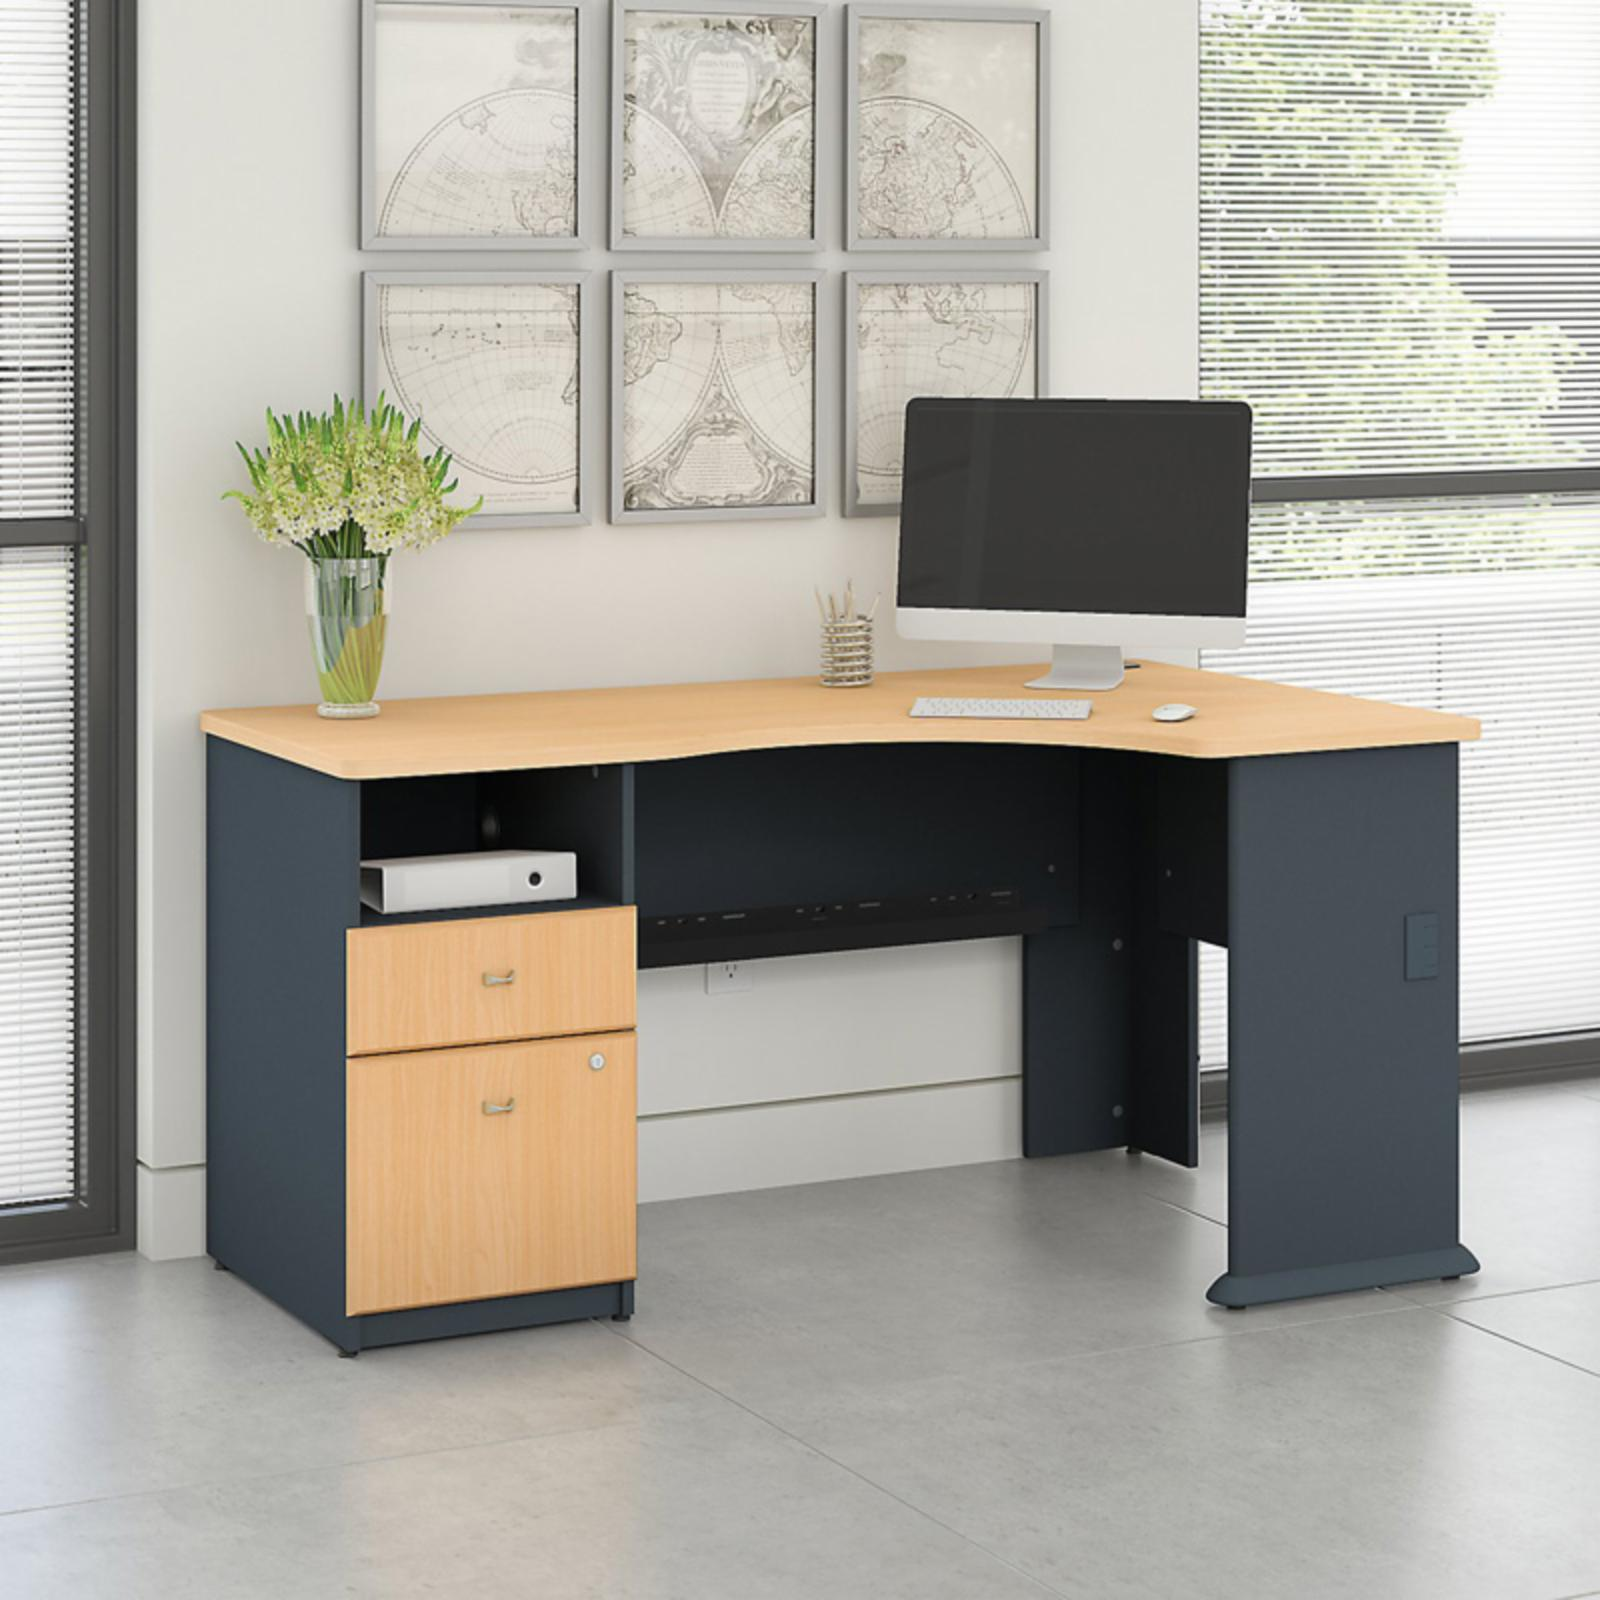 Office Connect Access Corner Office Desk with Pedestal - ACS001BE